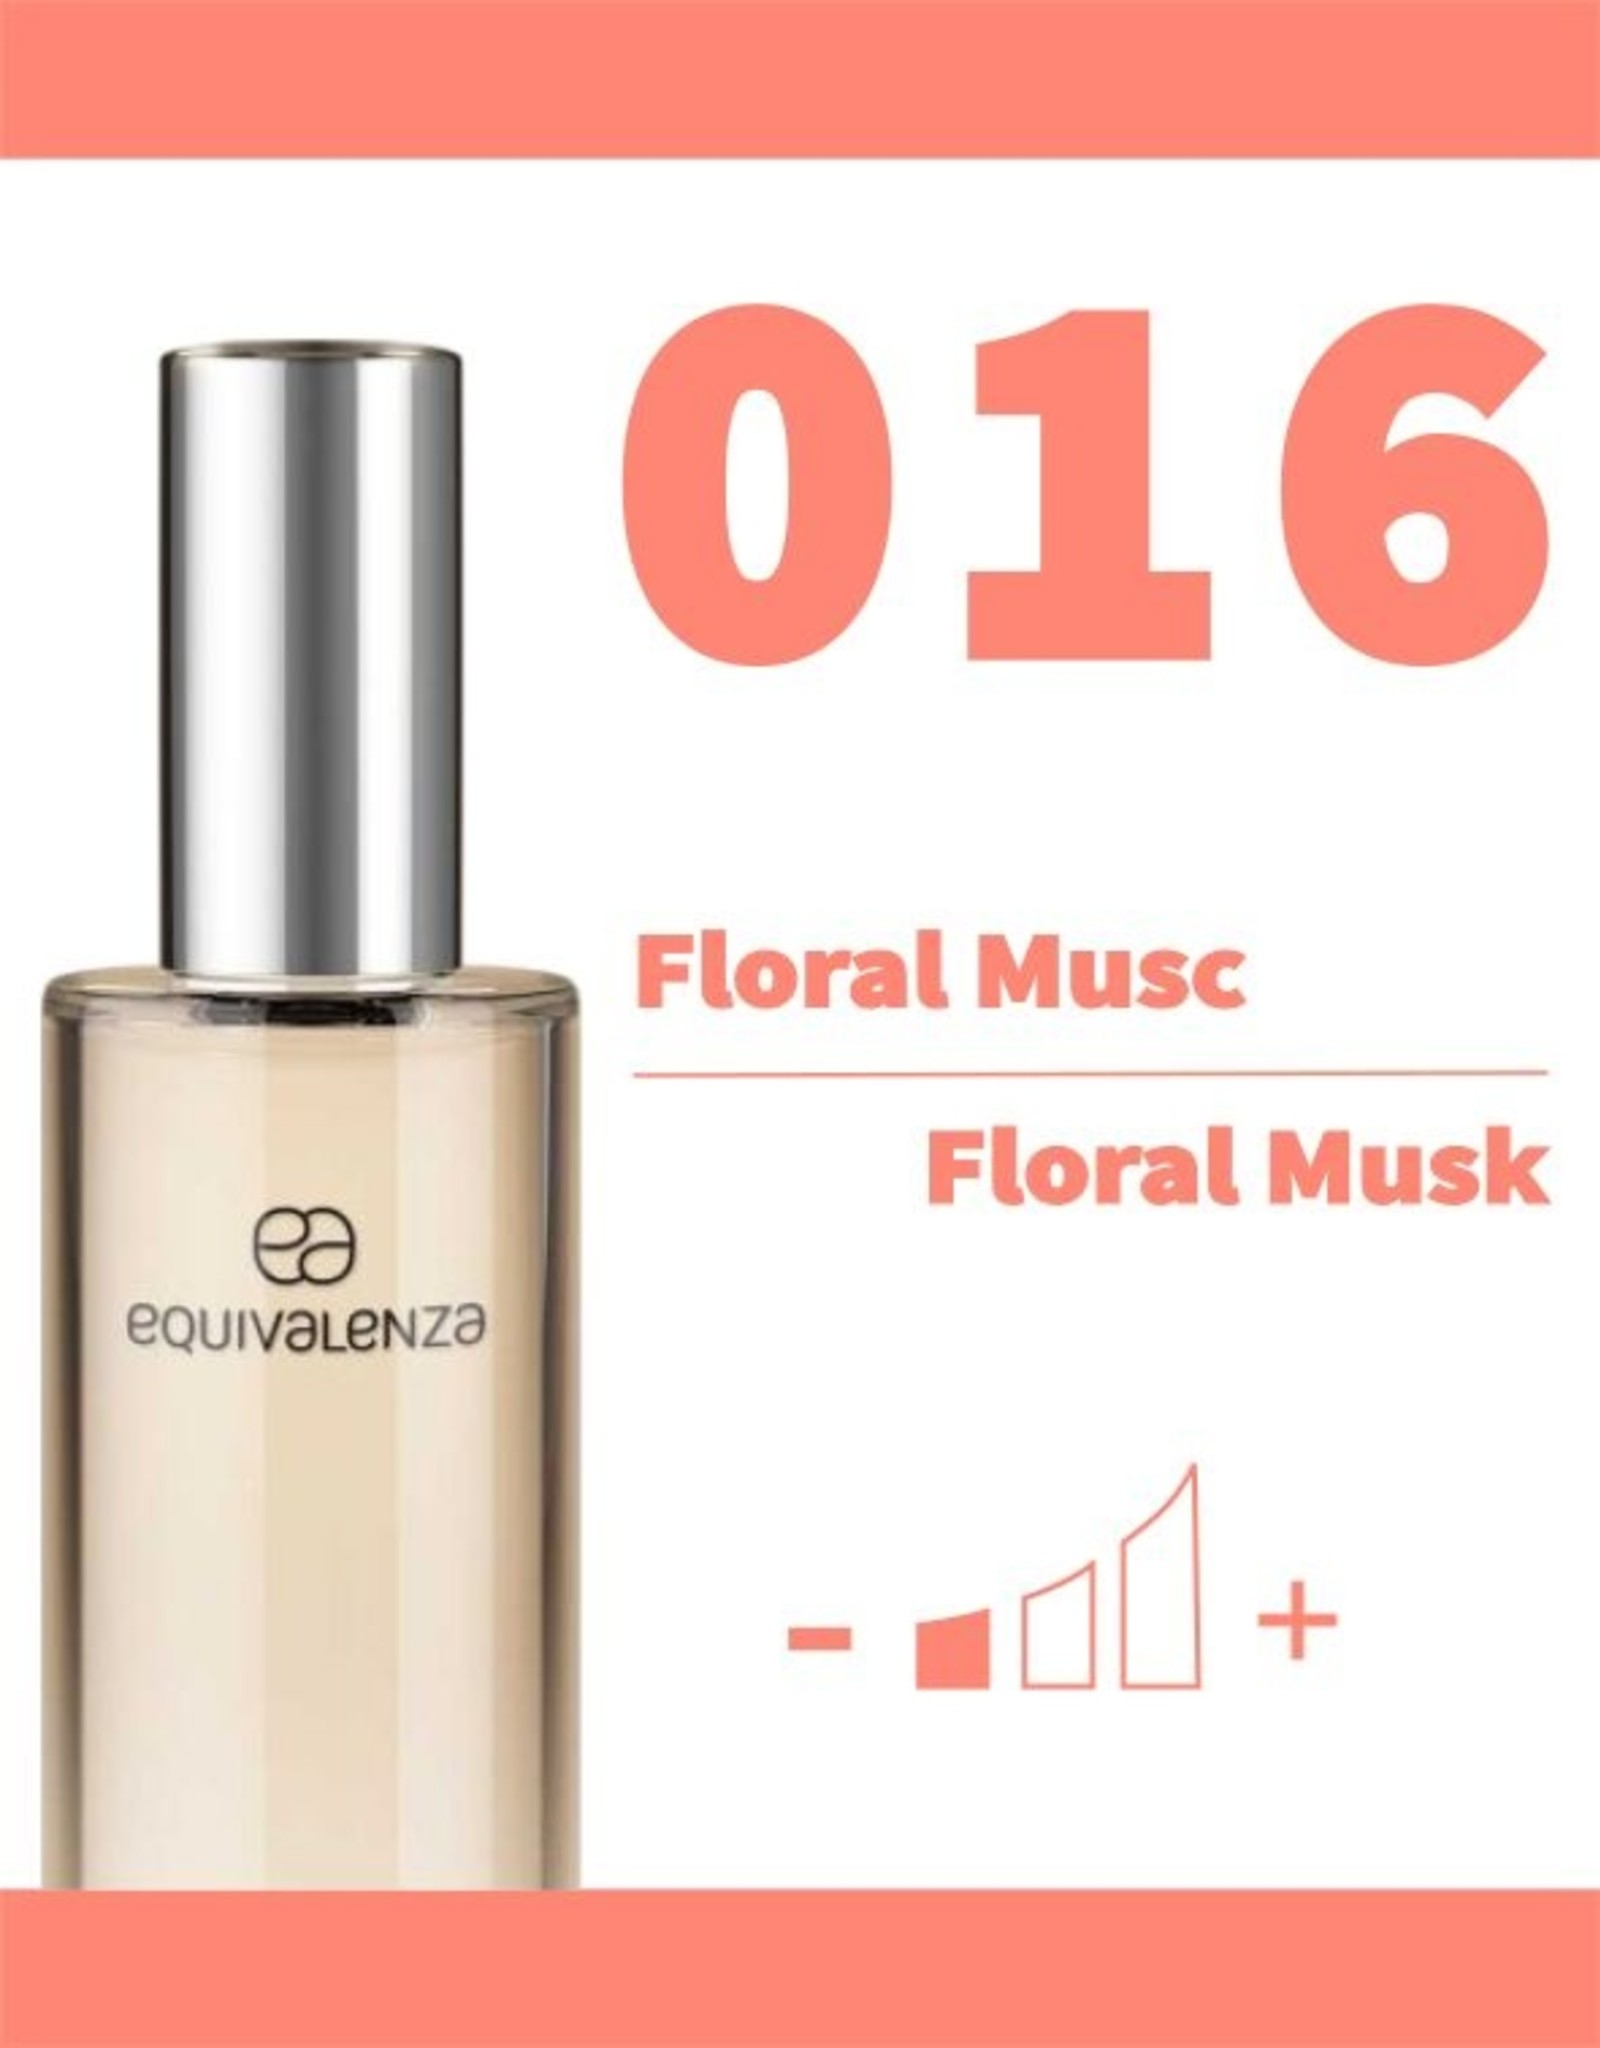 Equivalenza Floral Musk 016